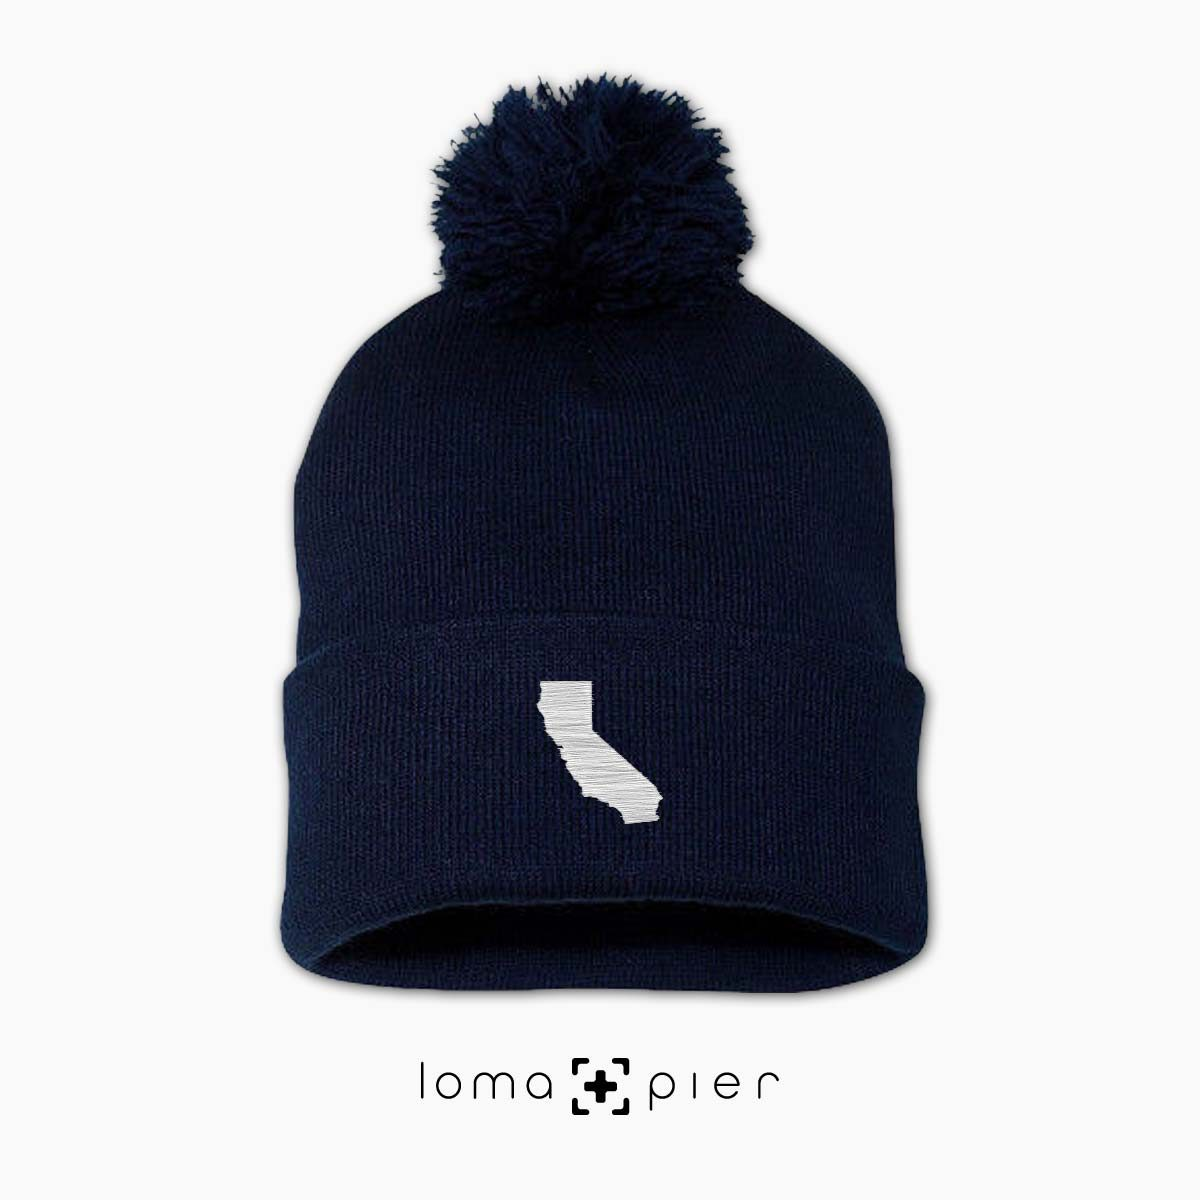 CALIFORNIA silhouette icon embroidered on a navy blue pom pom beanie by loma+pier hat store